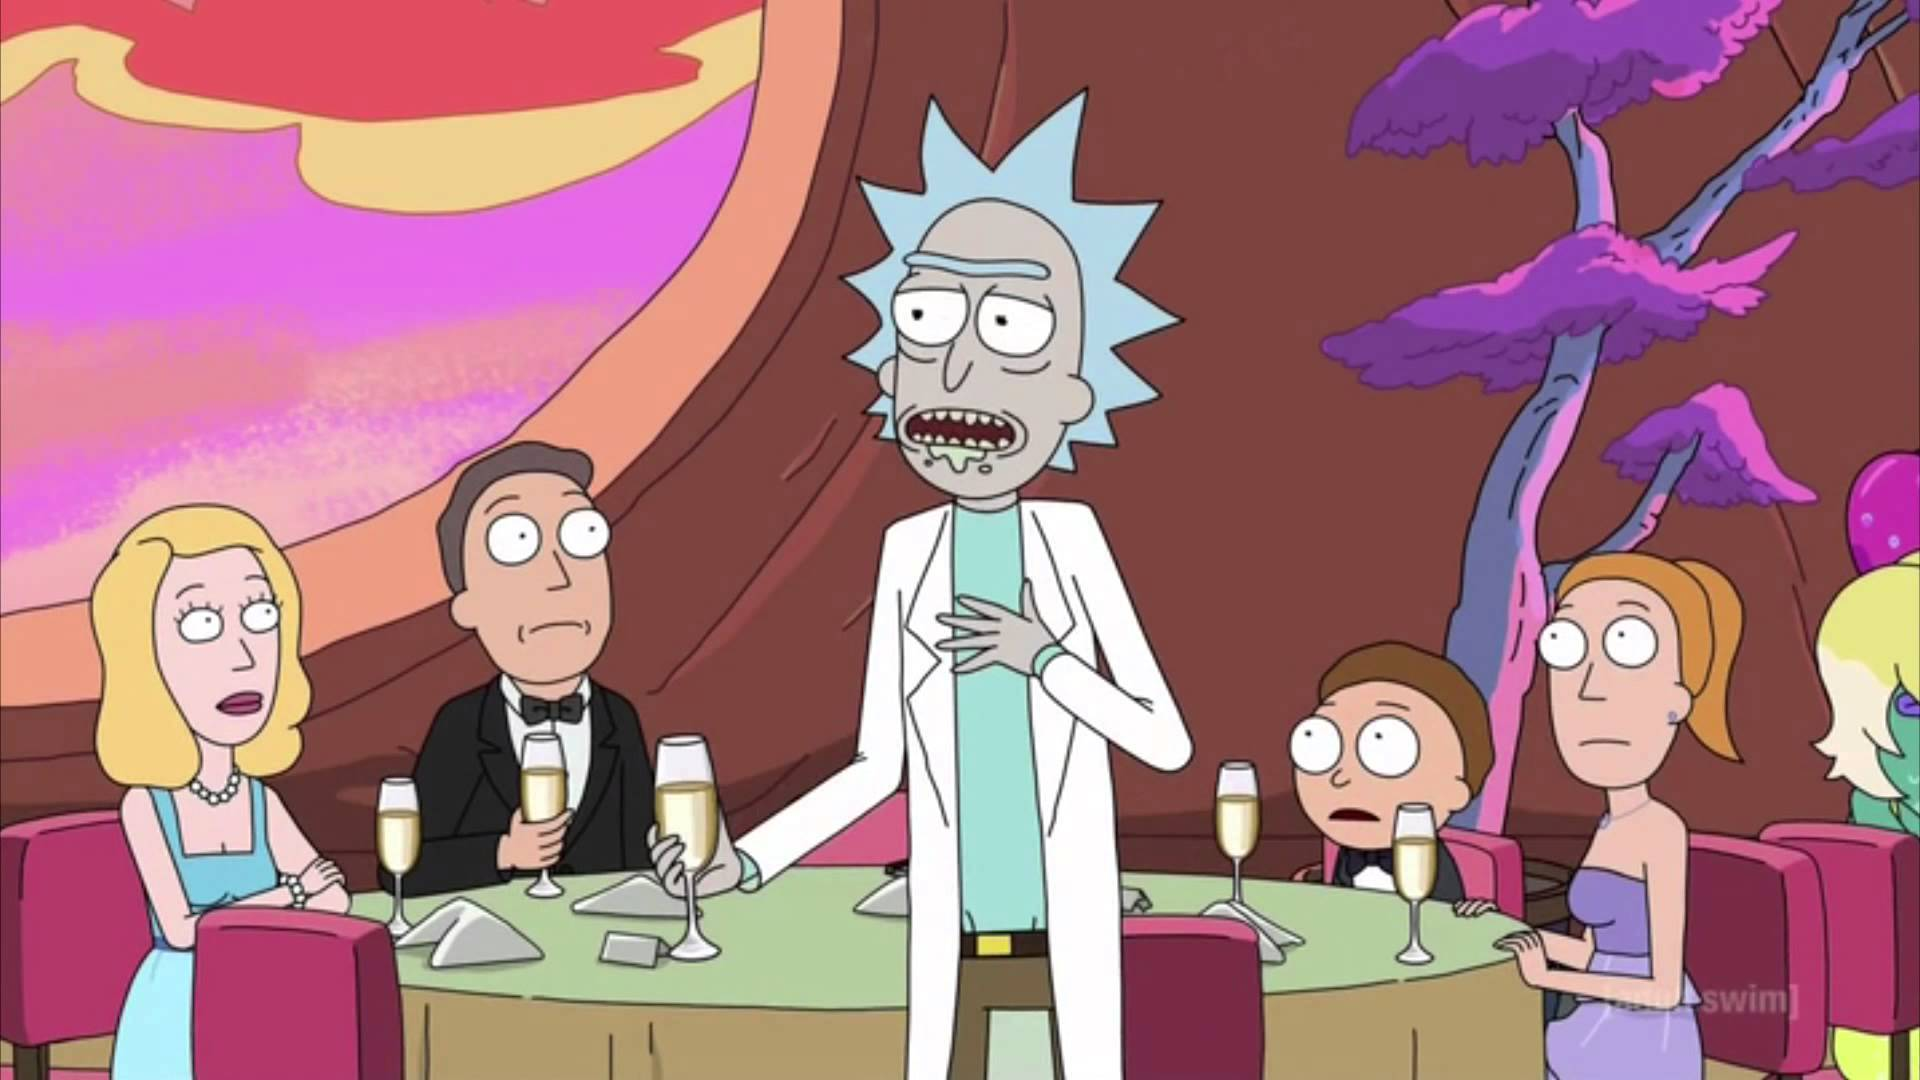 Best Rick And Morty Quotes Cool The 11 Best Rick And Morty Quotes In Honor Of Season 3's Return